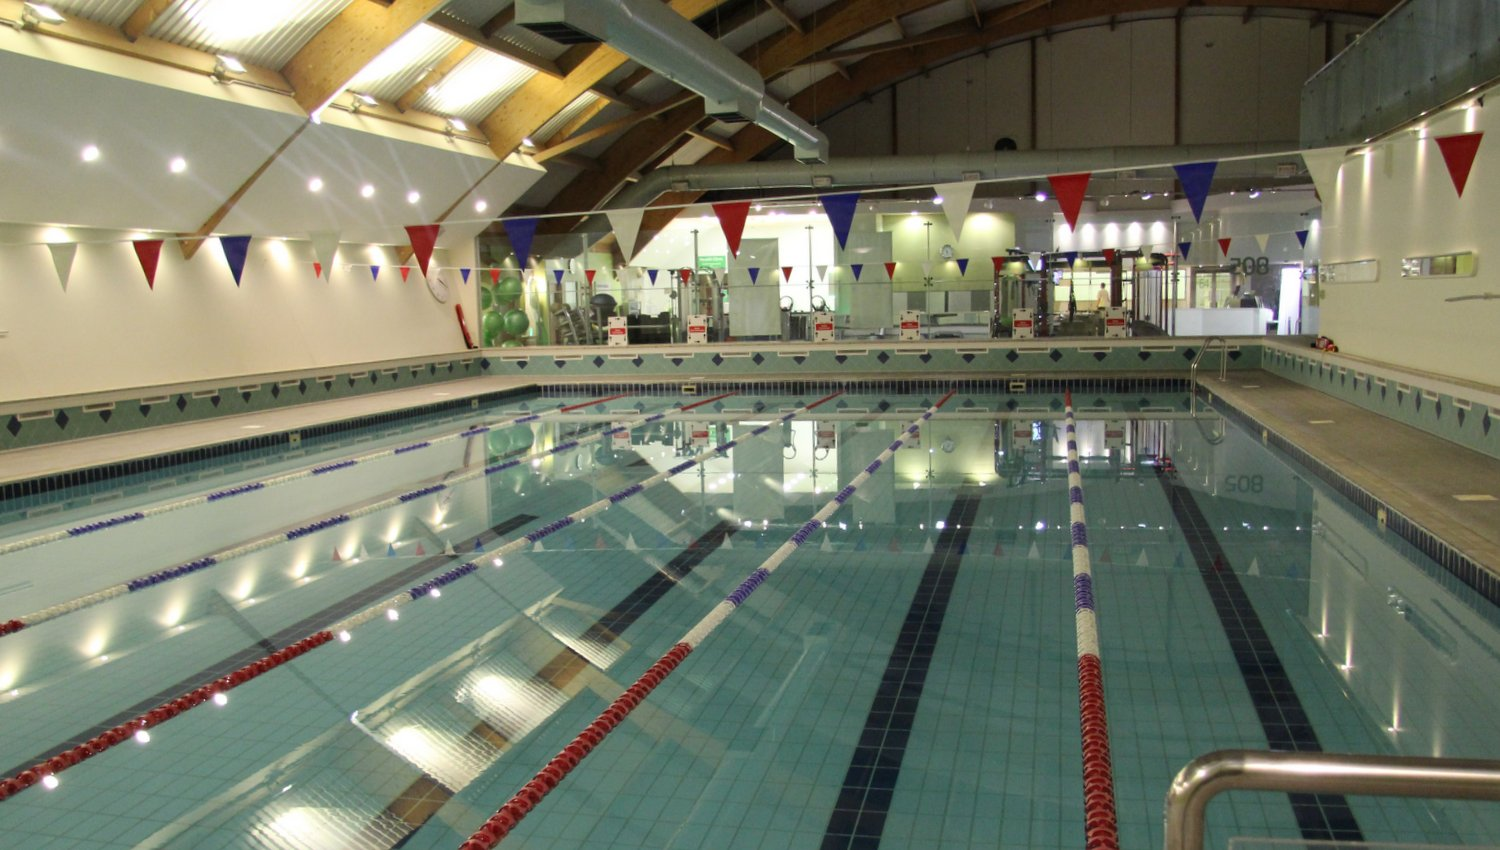 Court garden leisure centre swimming timetable garden ftempo St albans swimming pool timetable